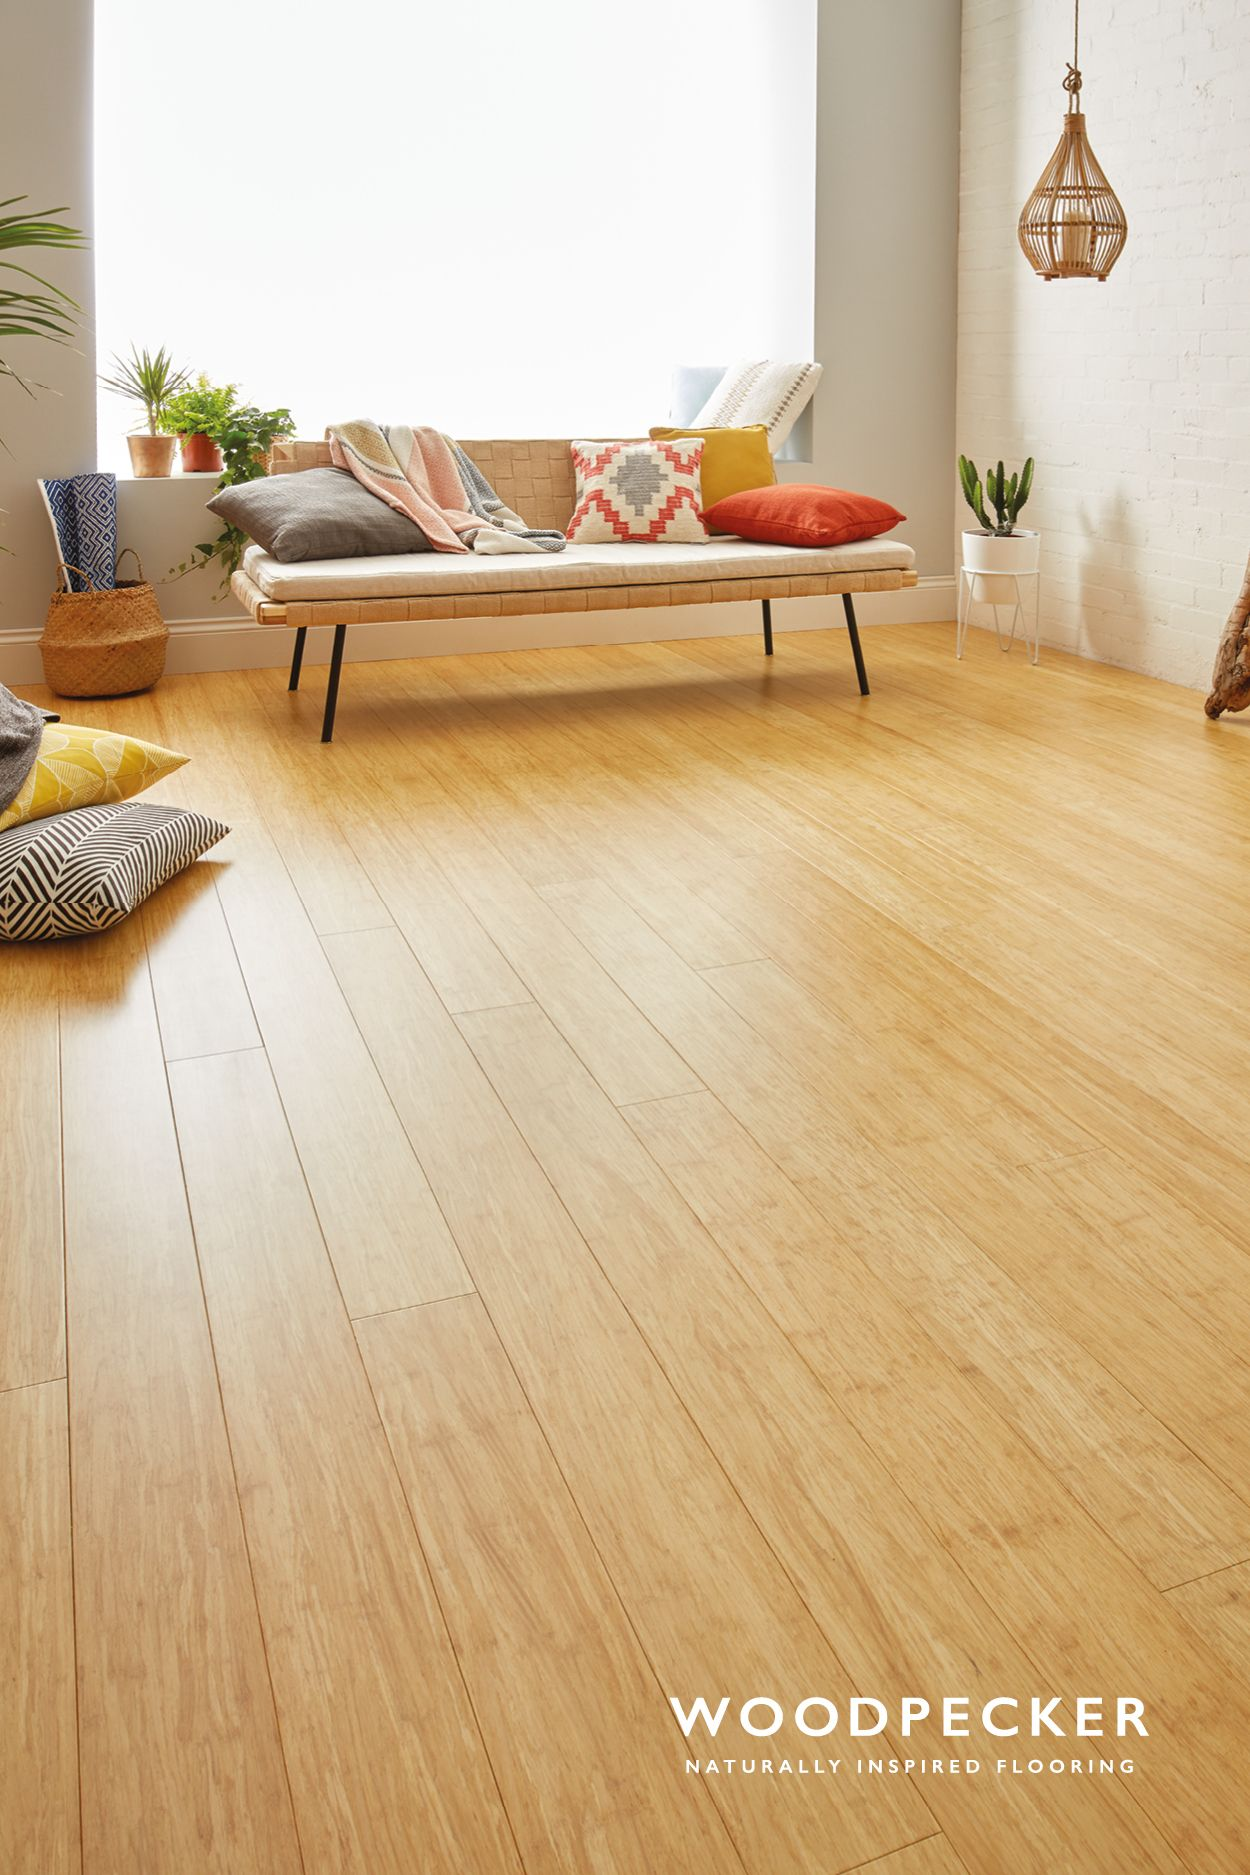 Oxwich Natural Strand Living Room Wood Floor Bamboo Flooring